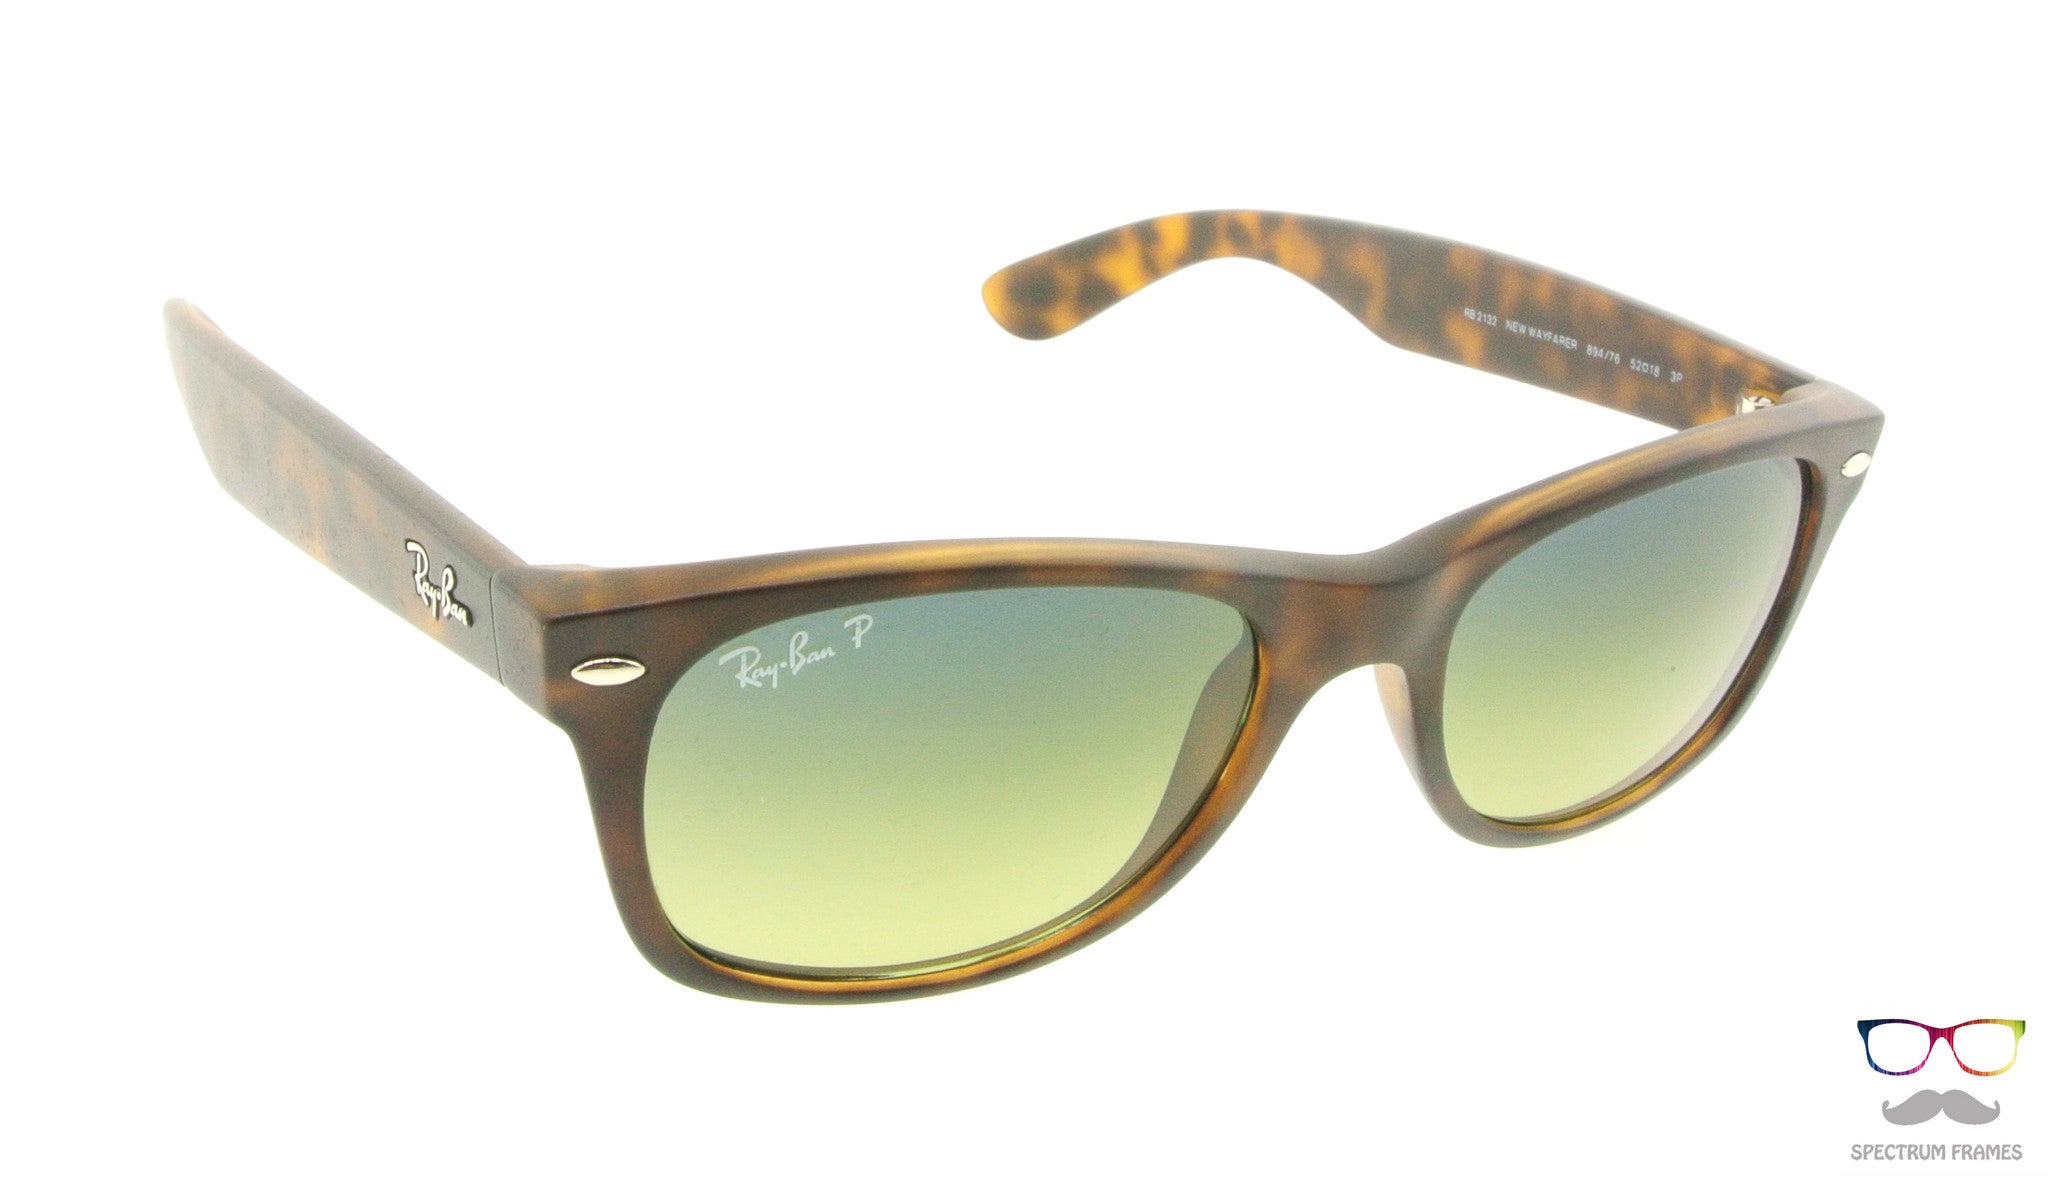 64fbab1aab8 ... Ray Ban Sunglasses RB 2132 894 76 Havana with Gradient Polarized Lens  Size 52 ...